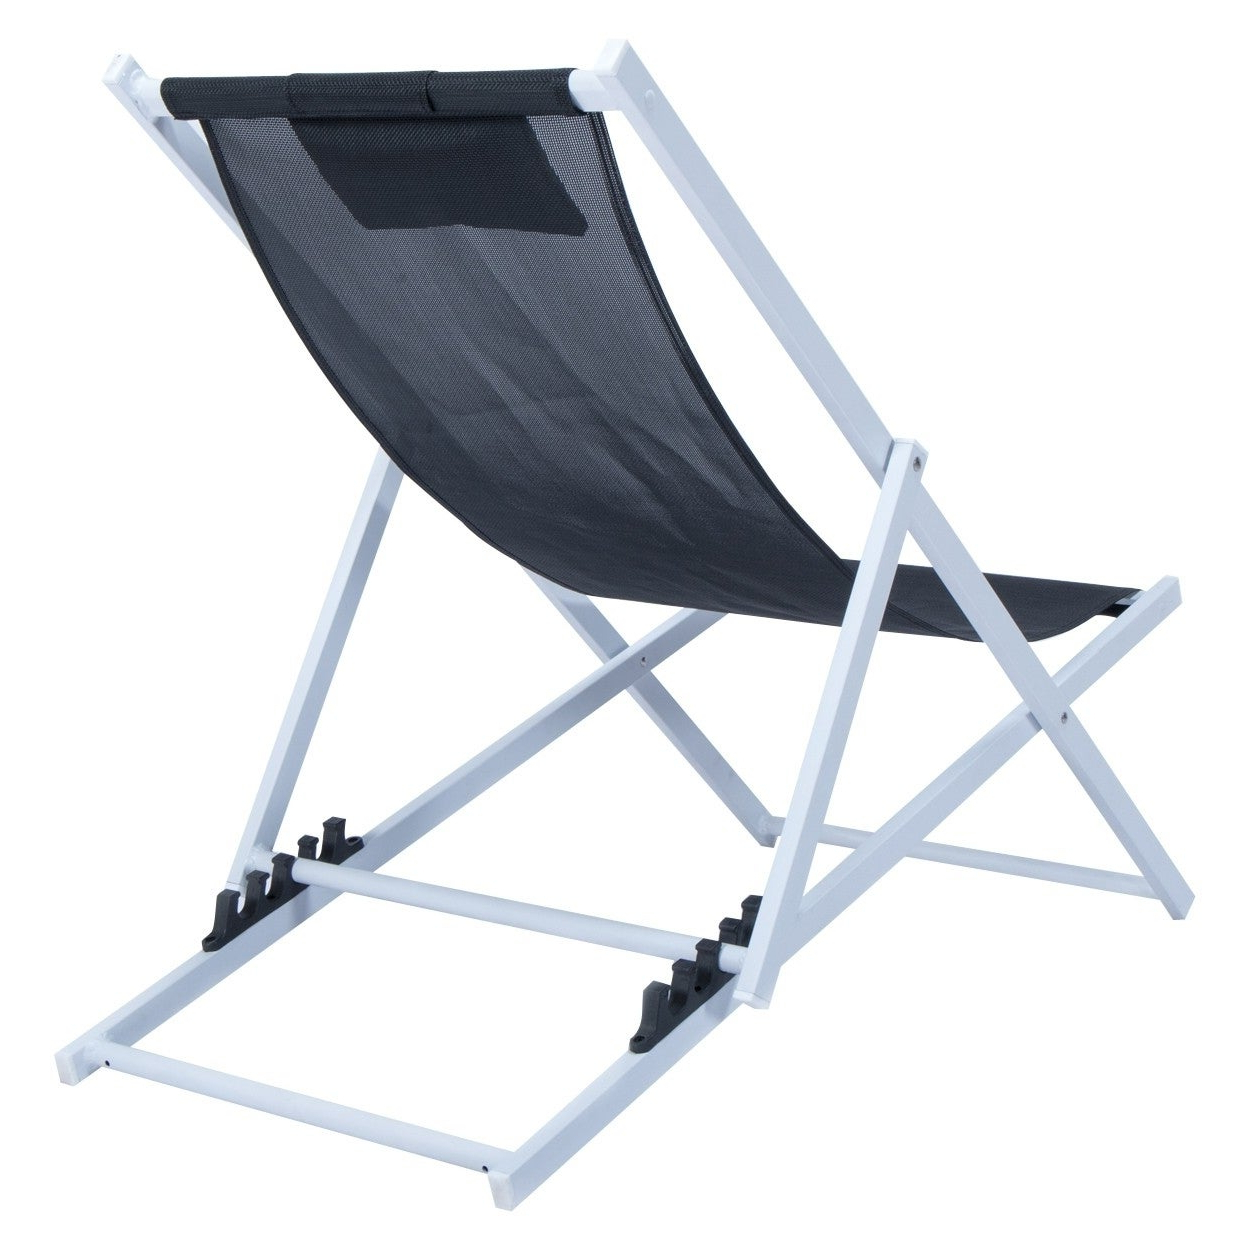 Most Recent Sunset Patio Sling Folding Chairs With Headrest With Leisuremod Sunset Patio Sling Folding Chair Adjustable With Headrest (Gallery 6 of 25)